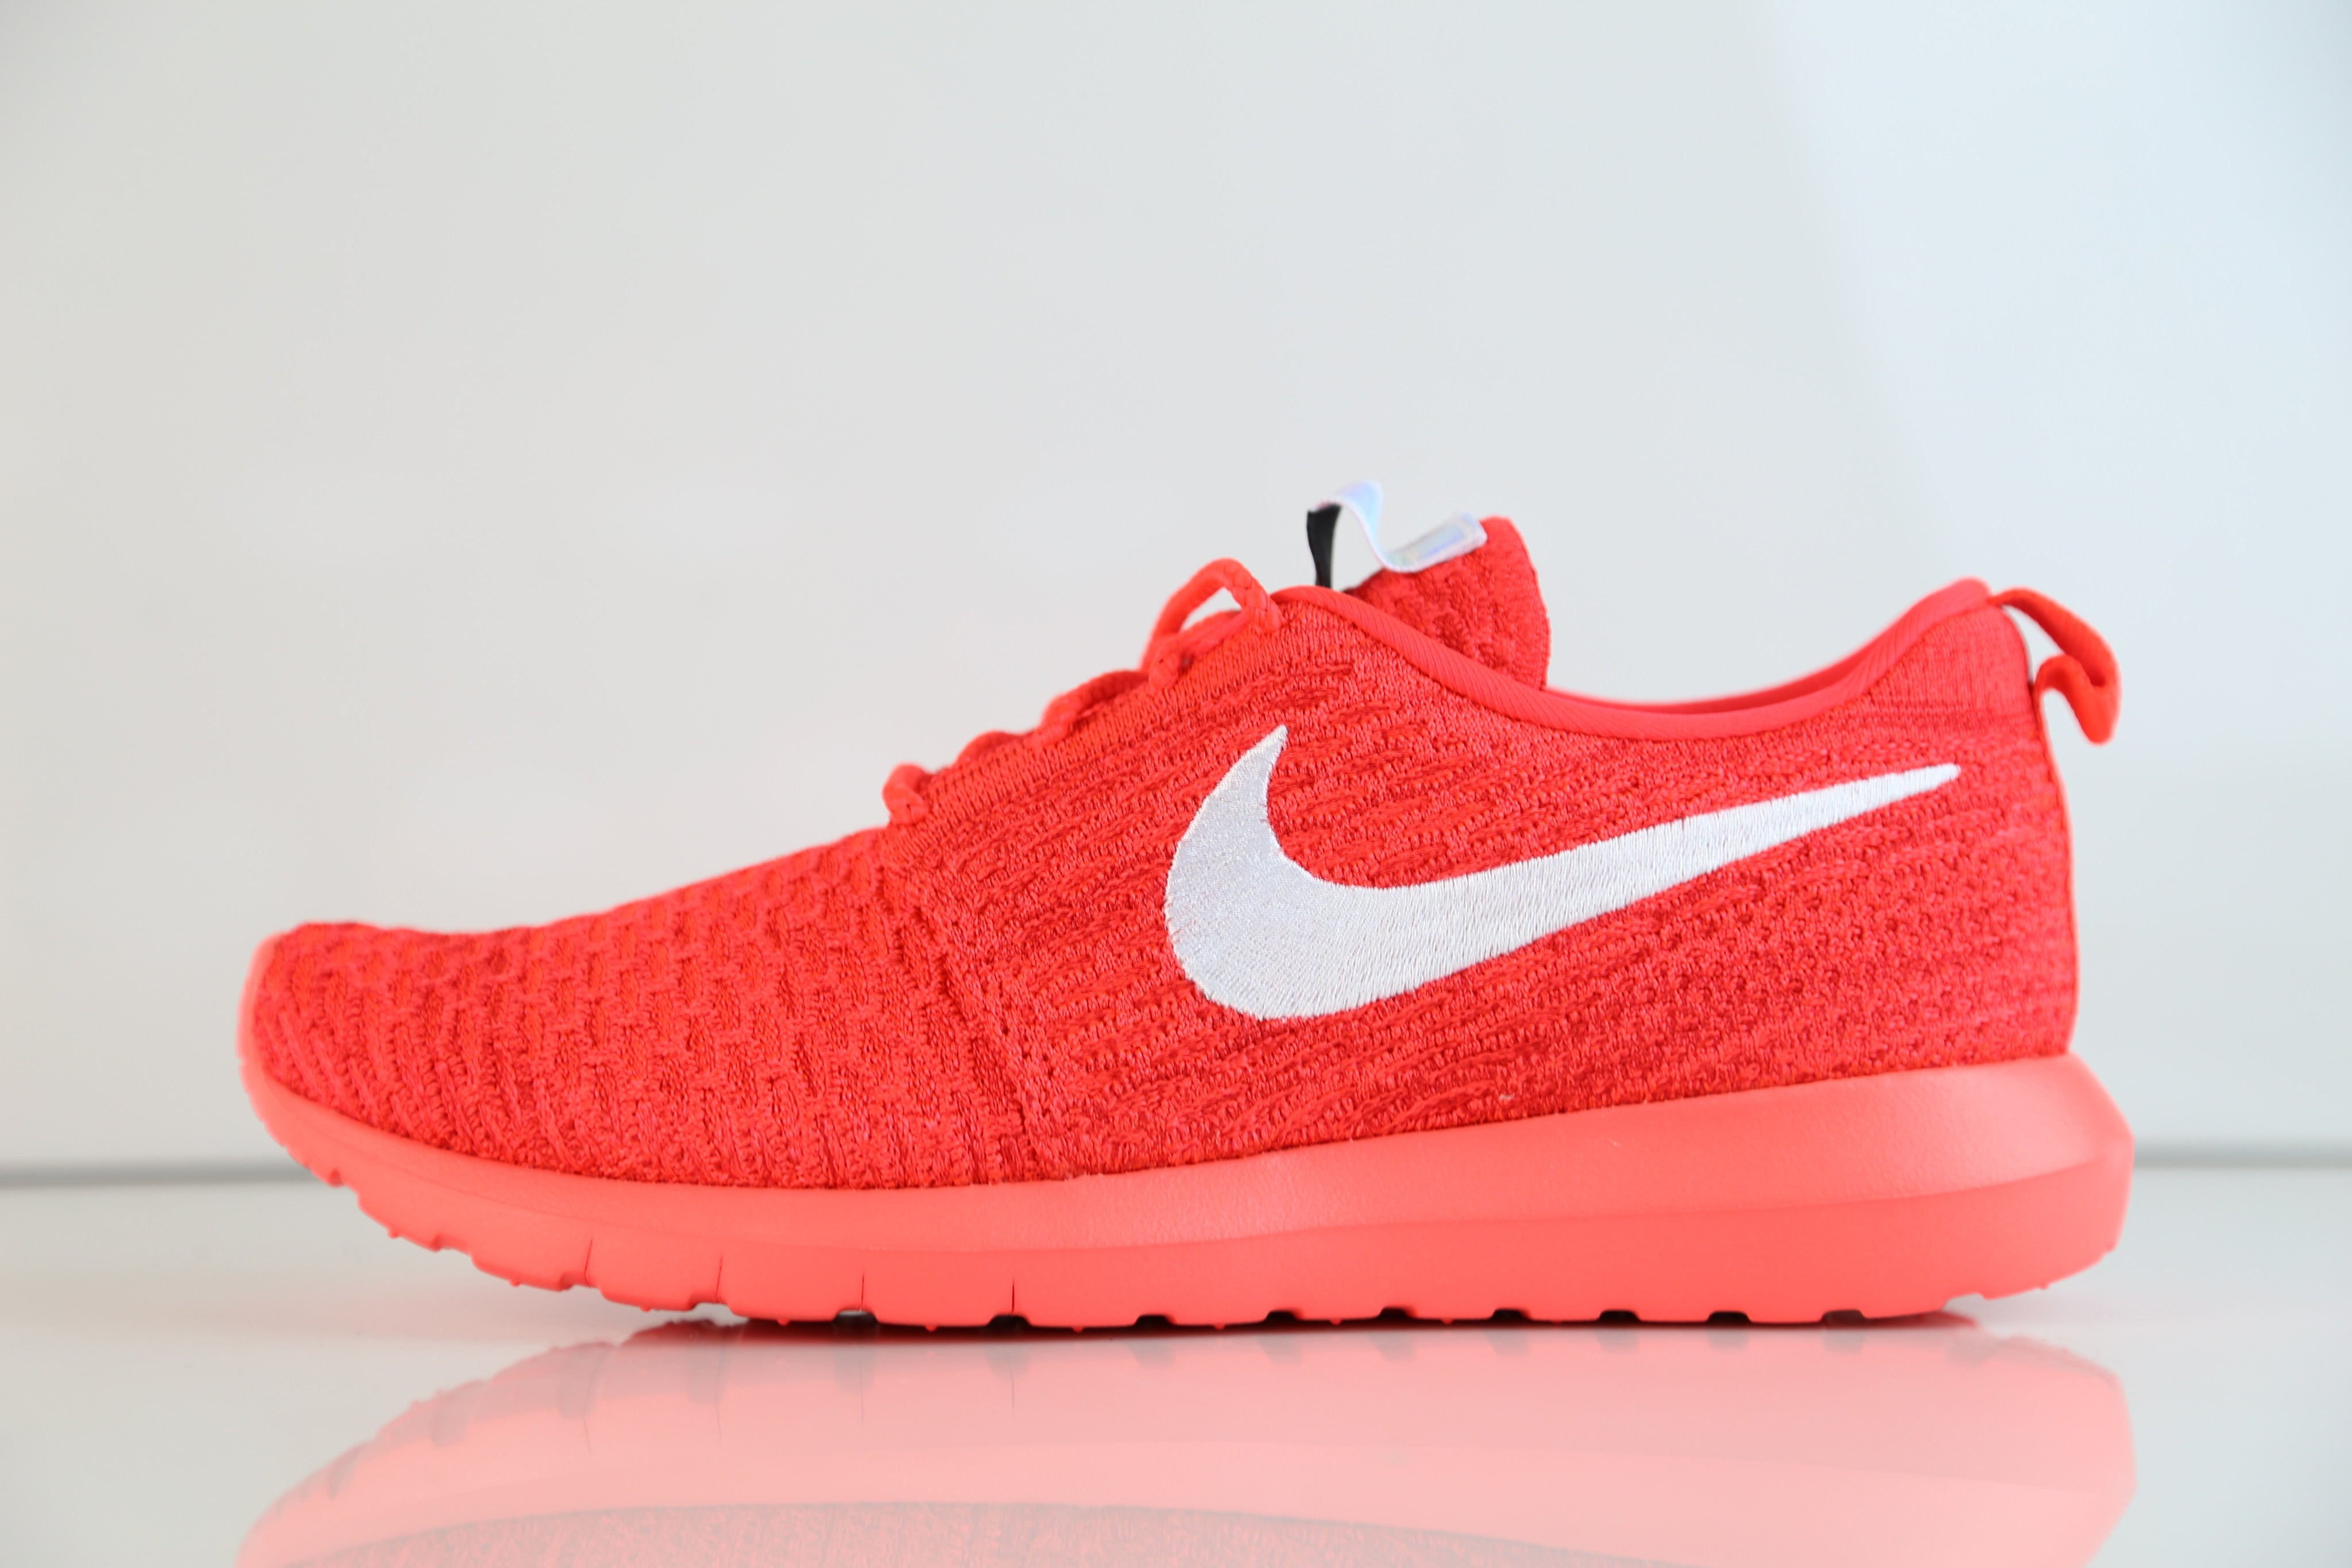 3b617b1865c5 Nike Roshe Run Flyknit Bright Crimson White 677243-604